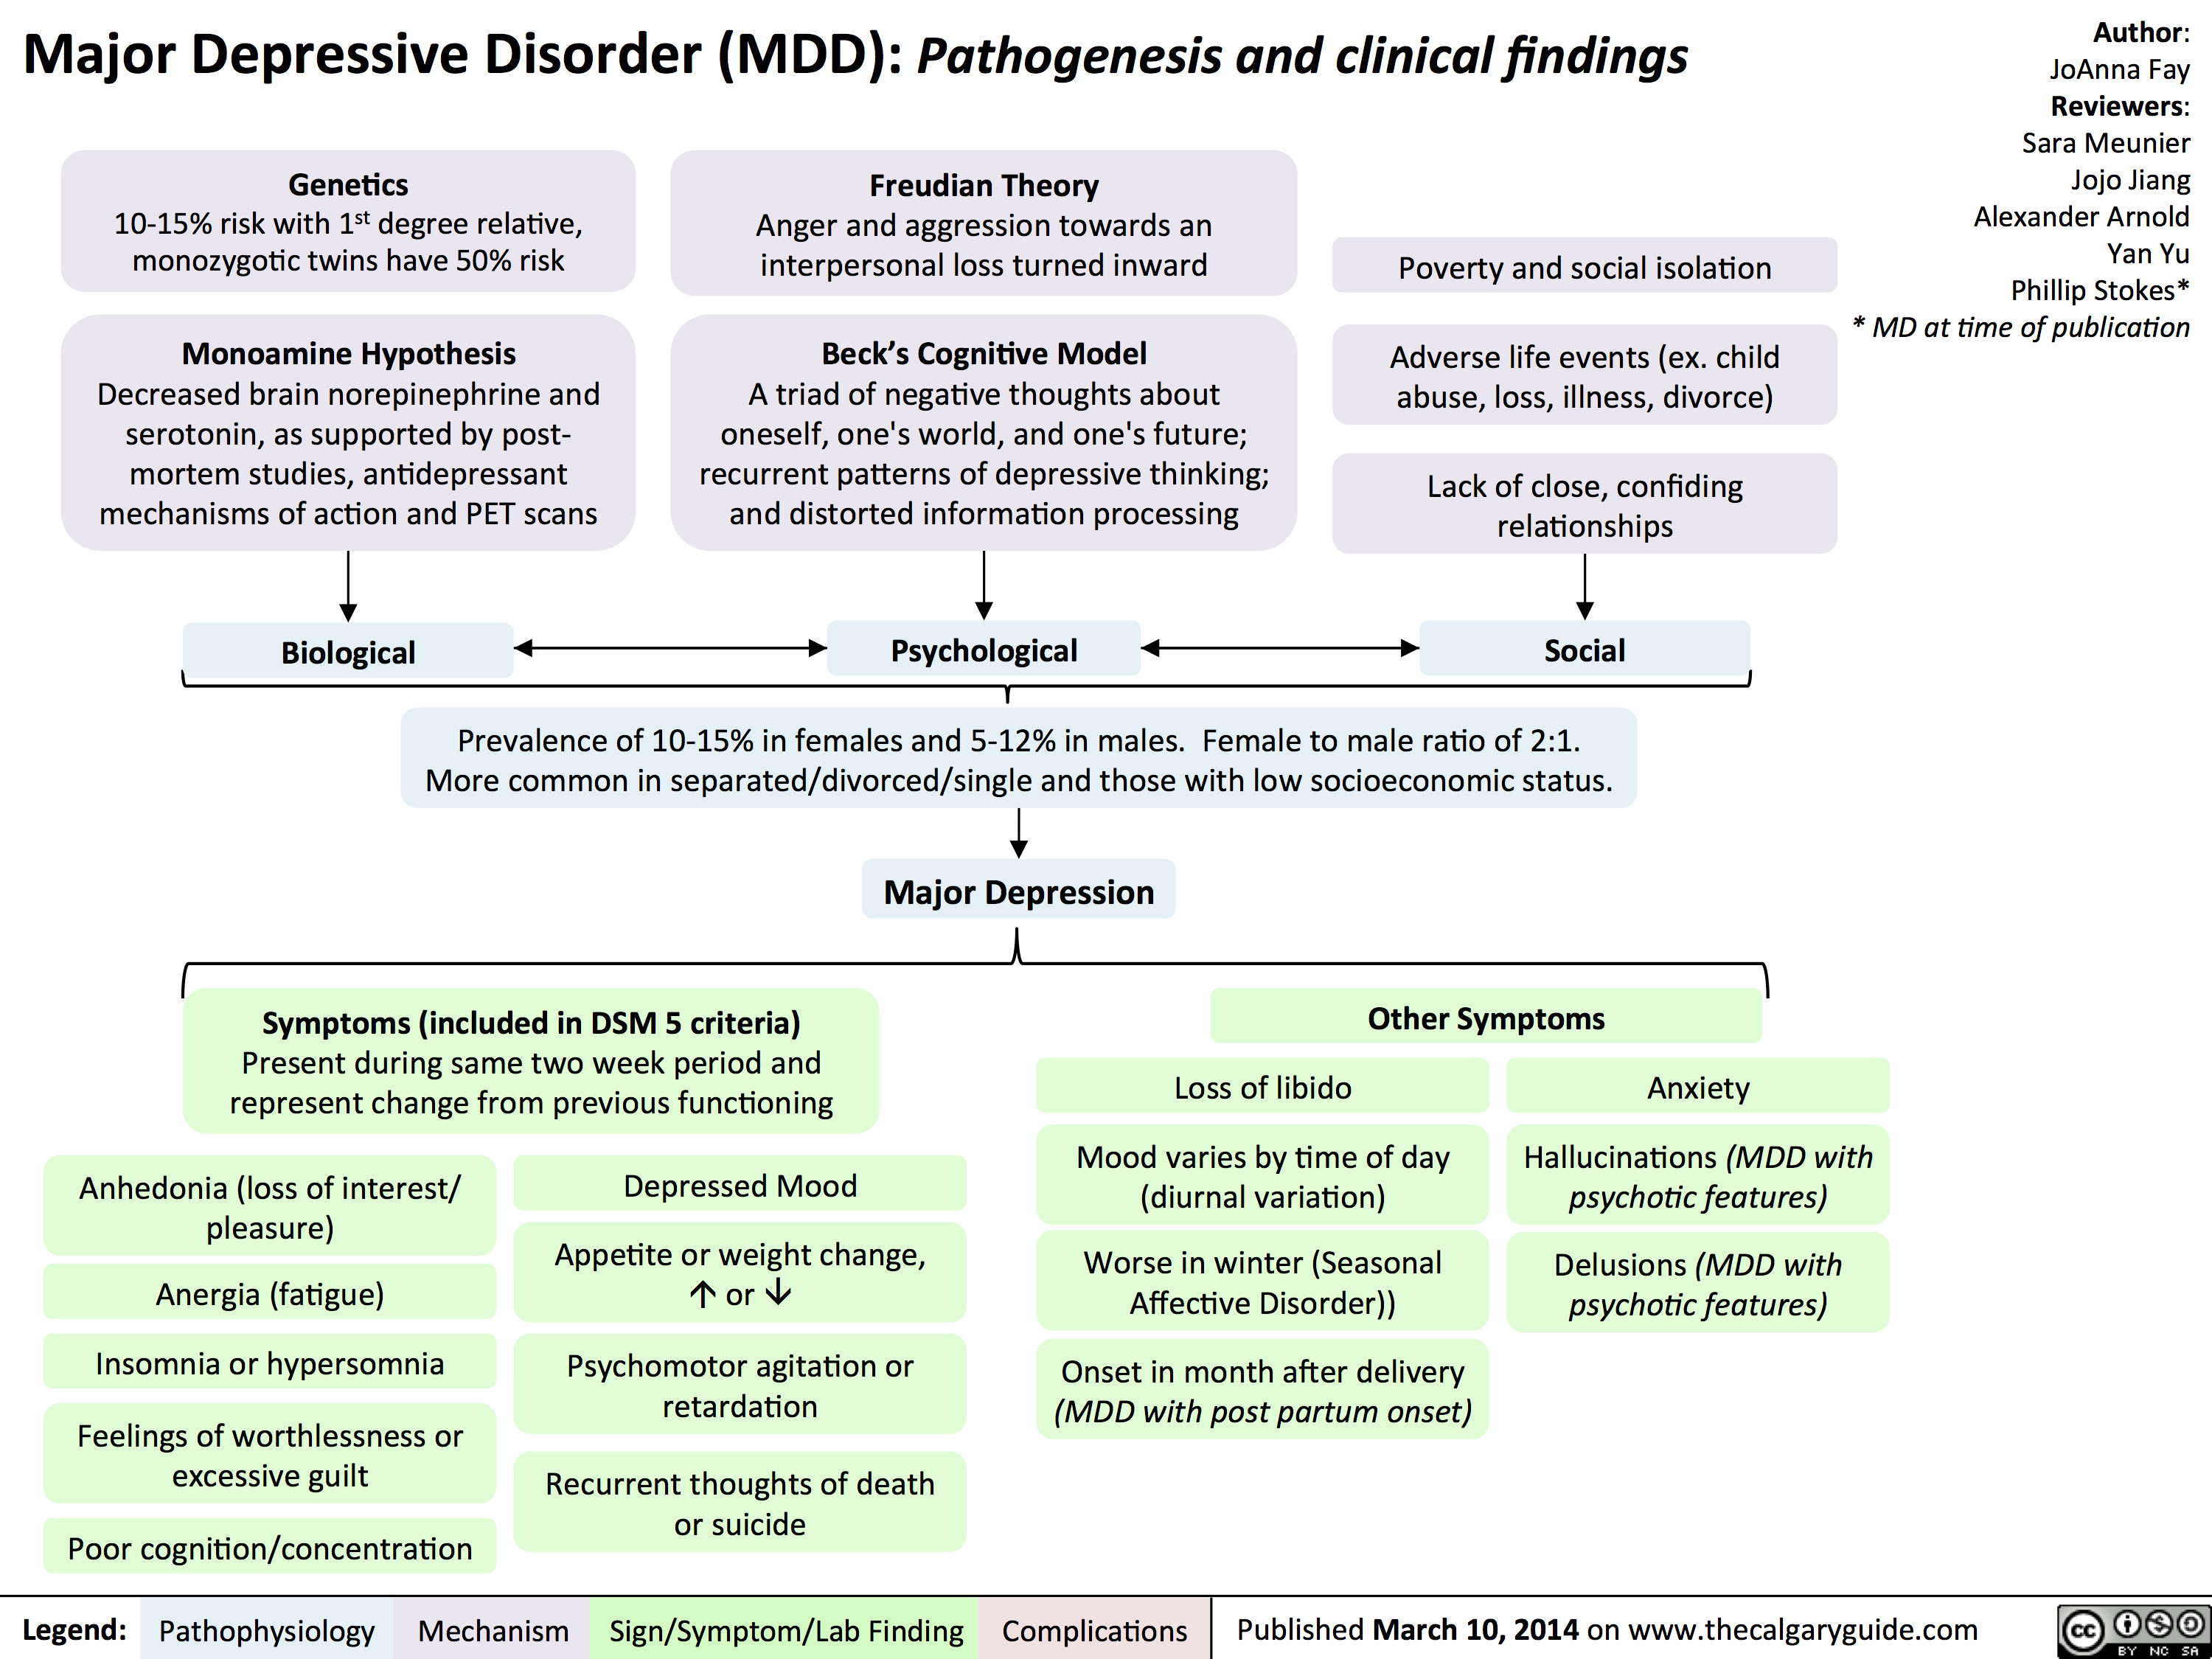 Major Depressive Disorder (MDD): Pathogenesis and Clinical ...